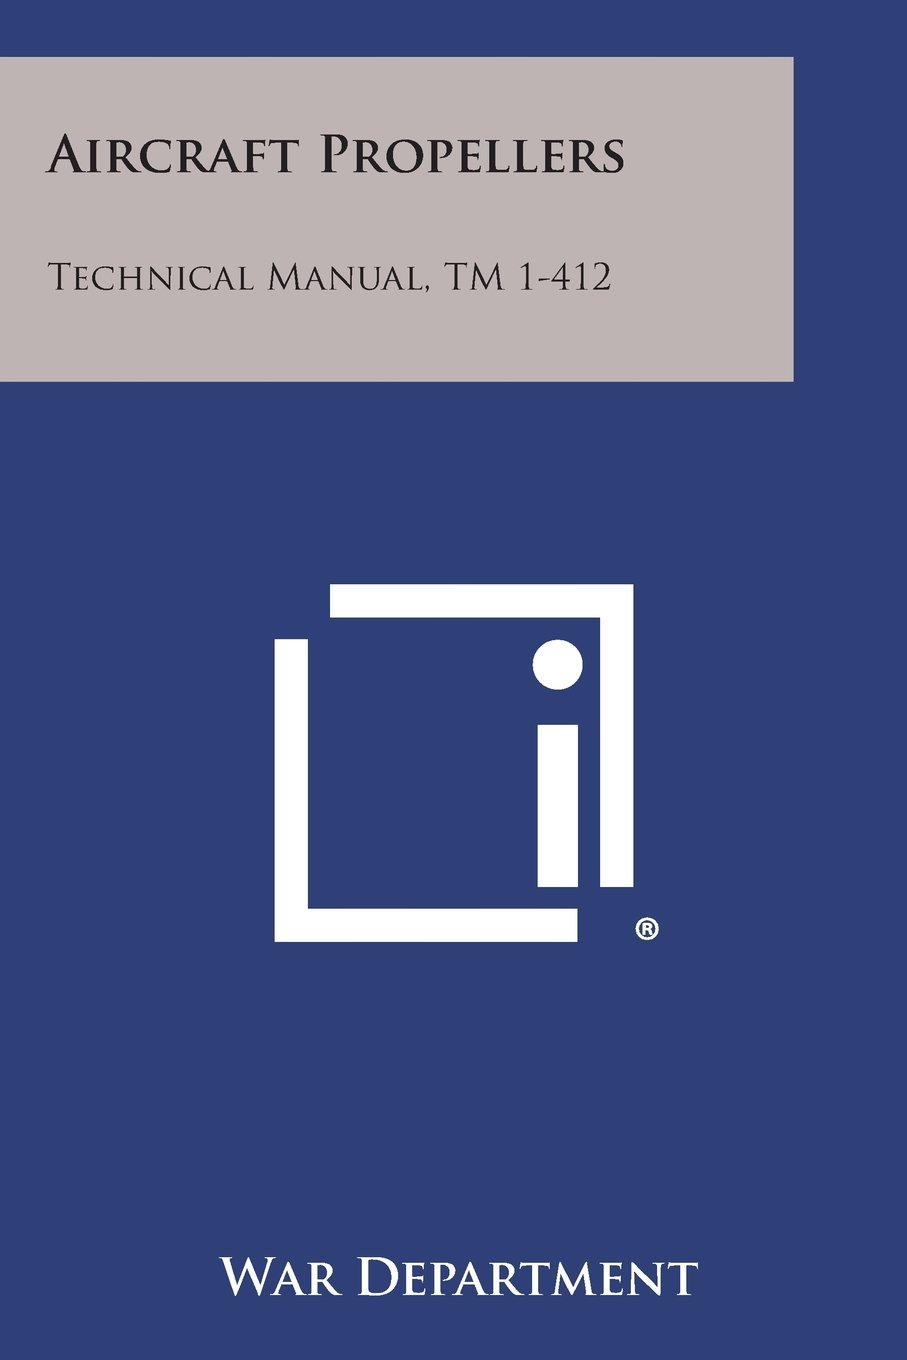 Download Aircraft Propellers: Technical Manual, TM 1-412 pdf